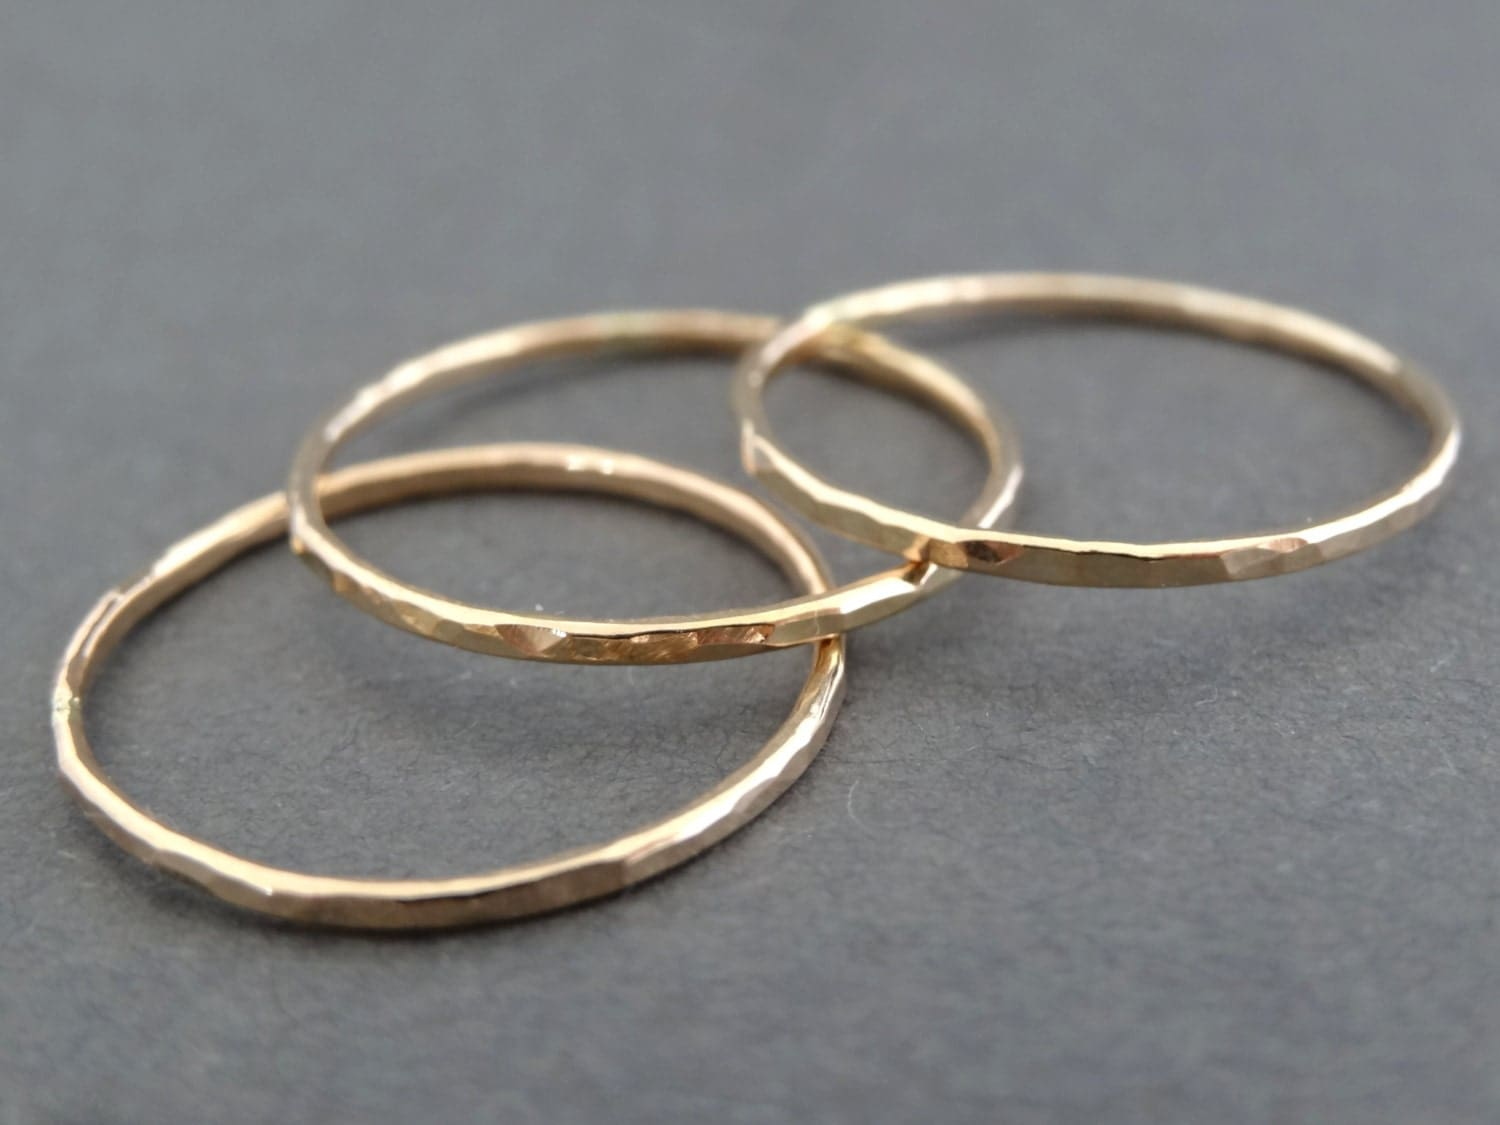 thin gold rings 14 k gold filled ring stacking rings. Black Bedroom Furniture Sets. Home Design Ideas